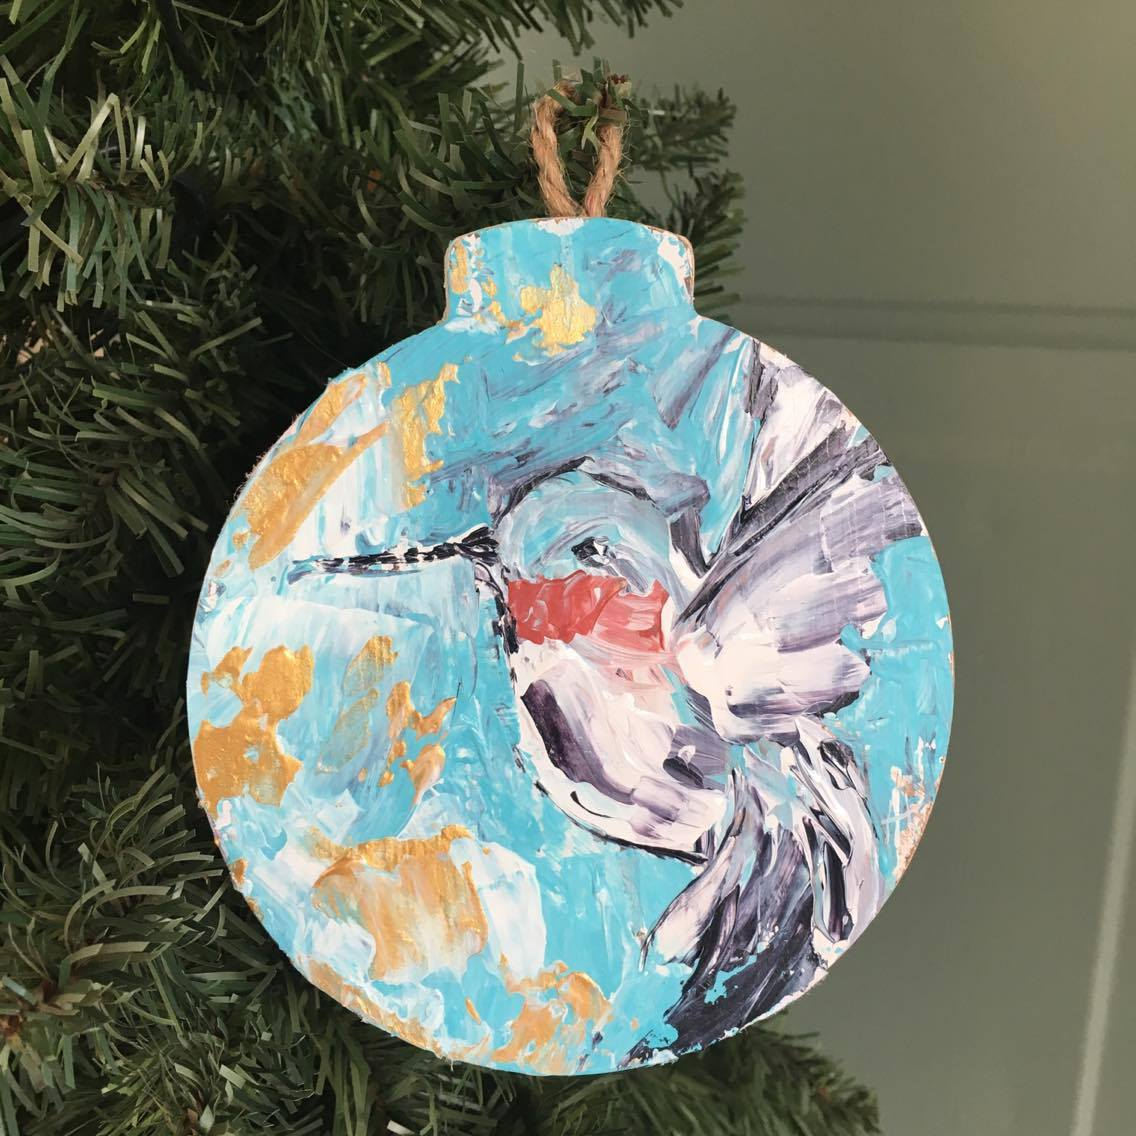 One of a kind, hand painted hummingbird ornament. Exclusively at The Little Bluebird Gallery | Art by Amanda Hilburn #hummingbird #ornament #bird